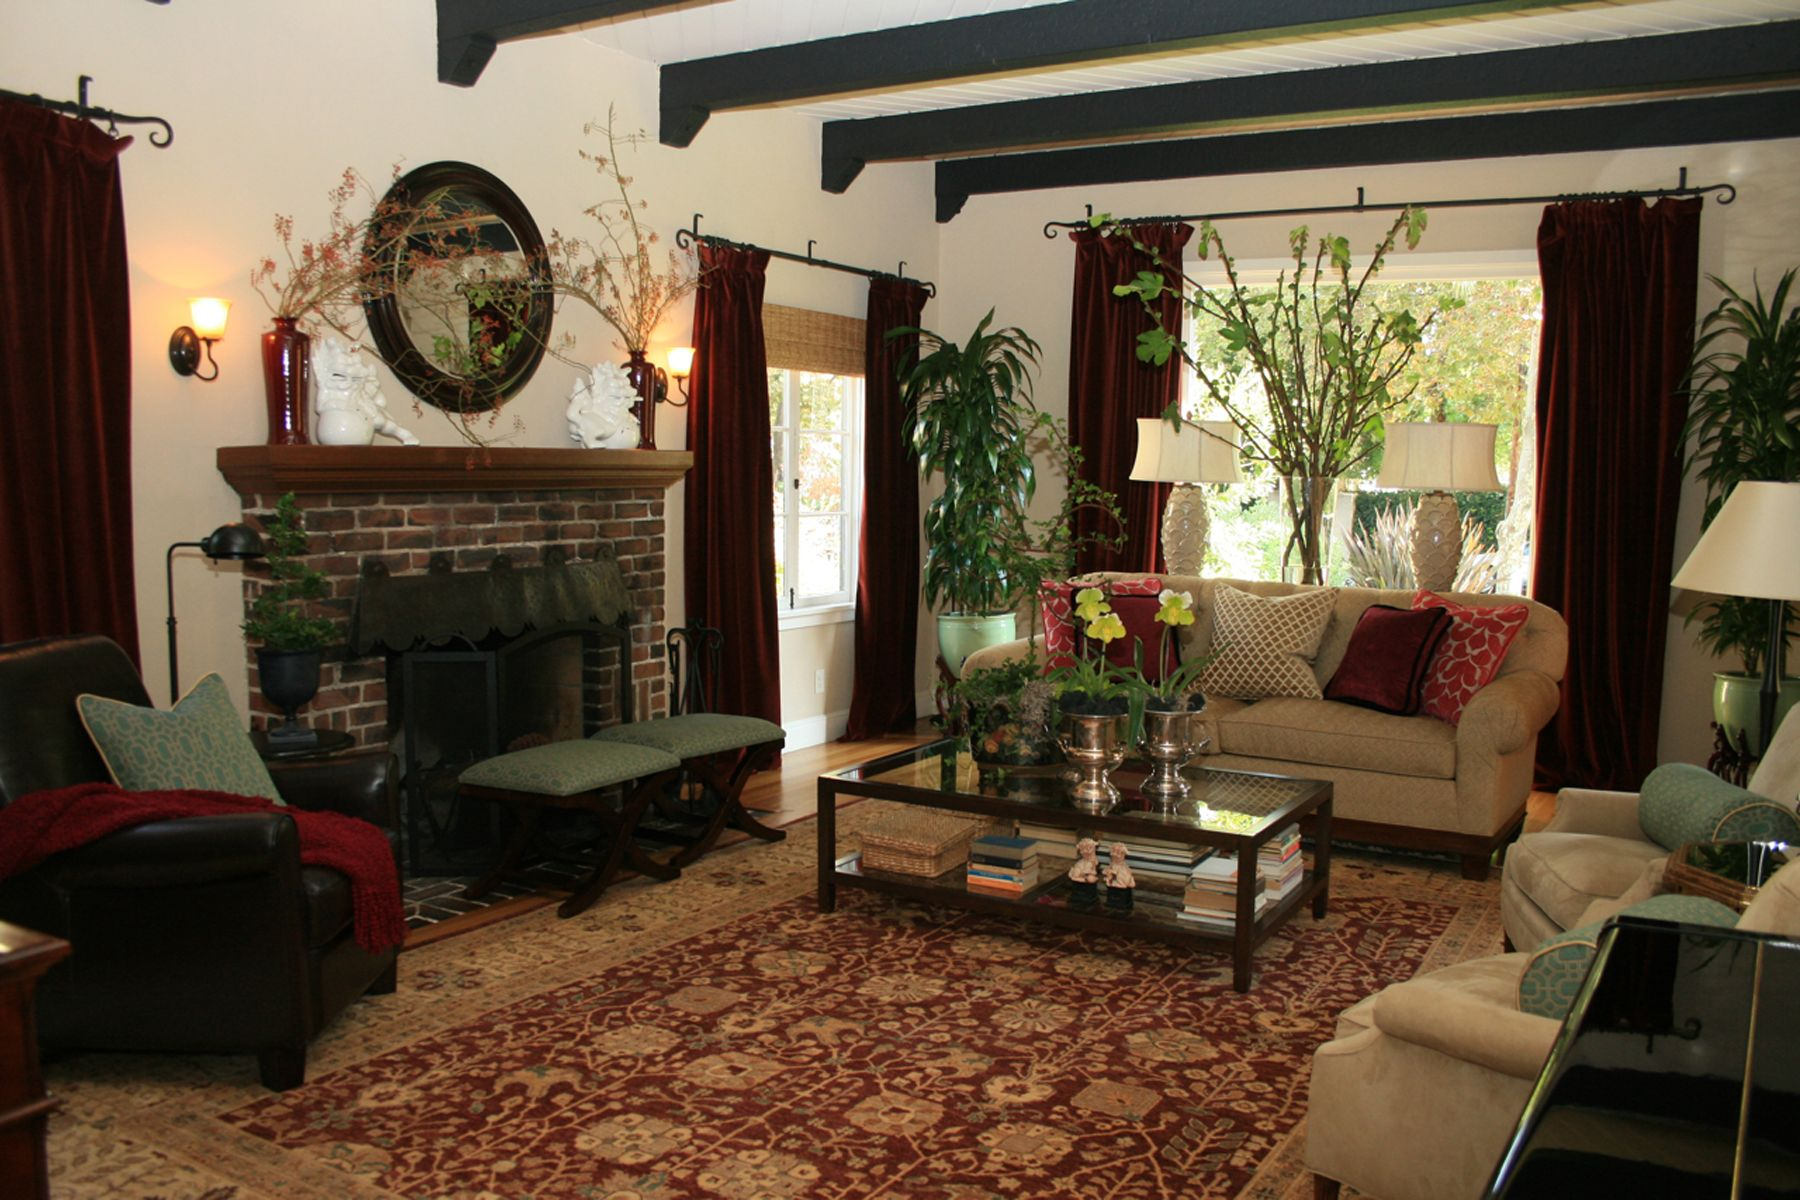 Living Room In Spanish Painting Spanish Style Homes  Style Living Room Design Interior Ideas .